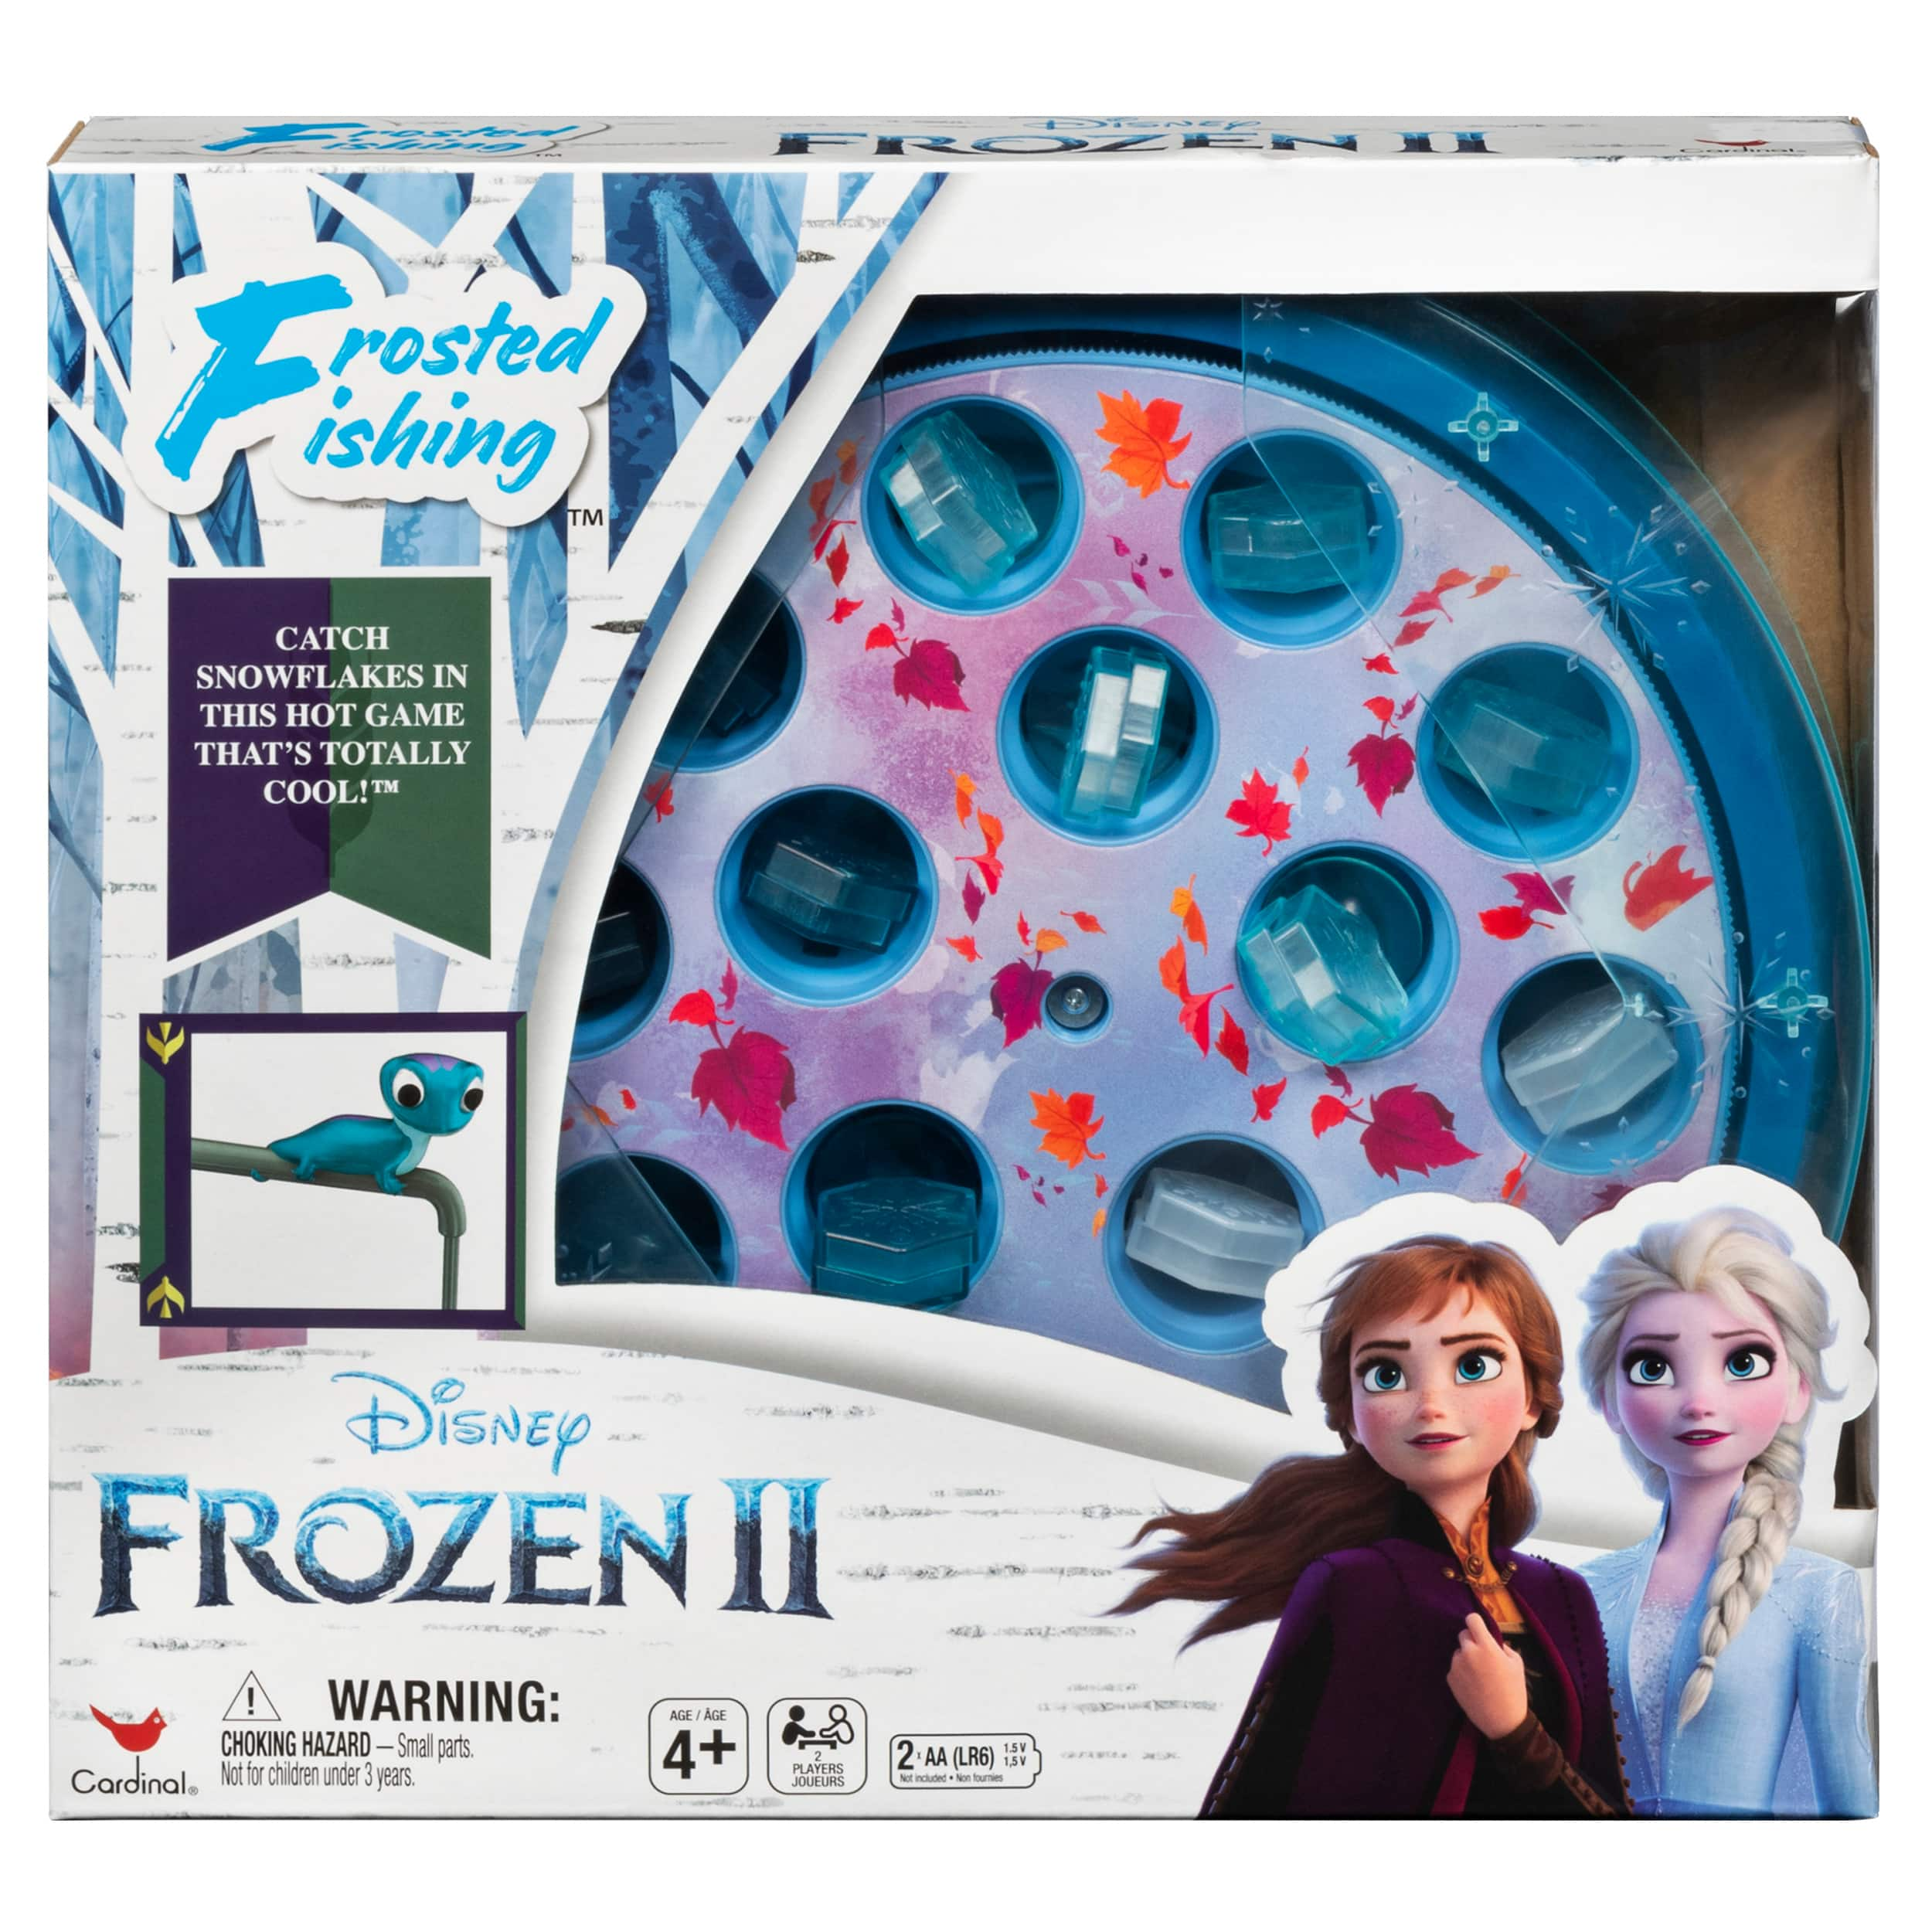 Rubik's Cube Neon Pop 3x3 Puzzle $5, Disney Frozen II Frosted Fishing Game $7.49 & More + Free Store Pickup at Walmart or FS on $35+